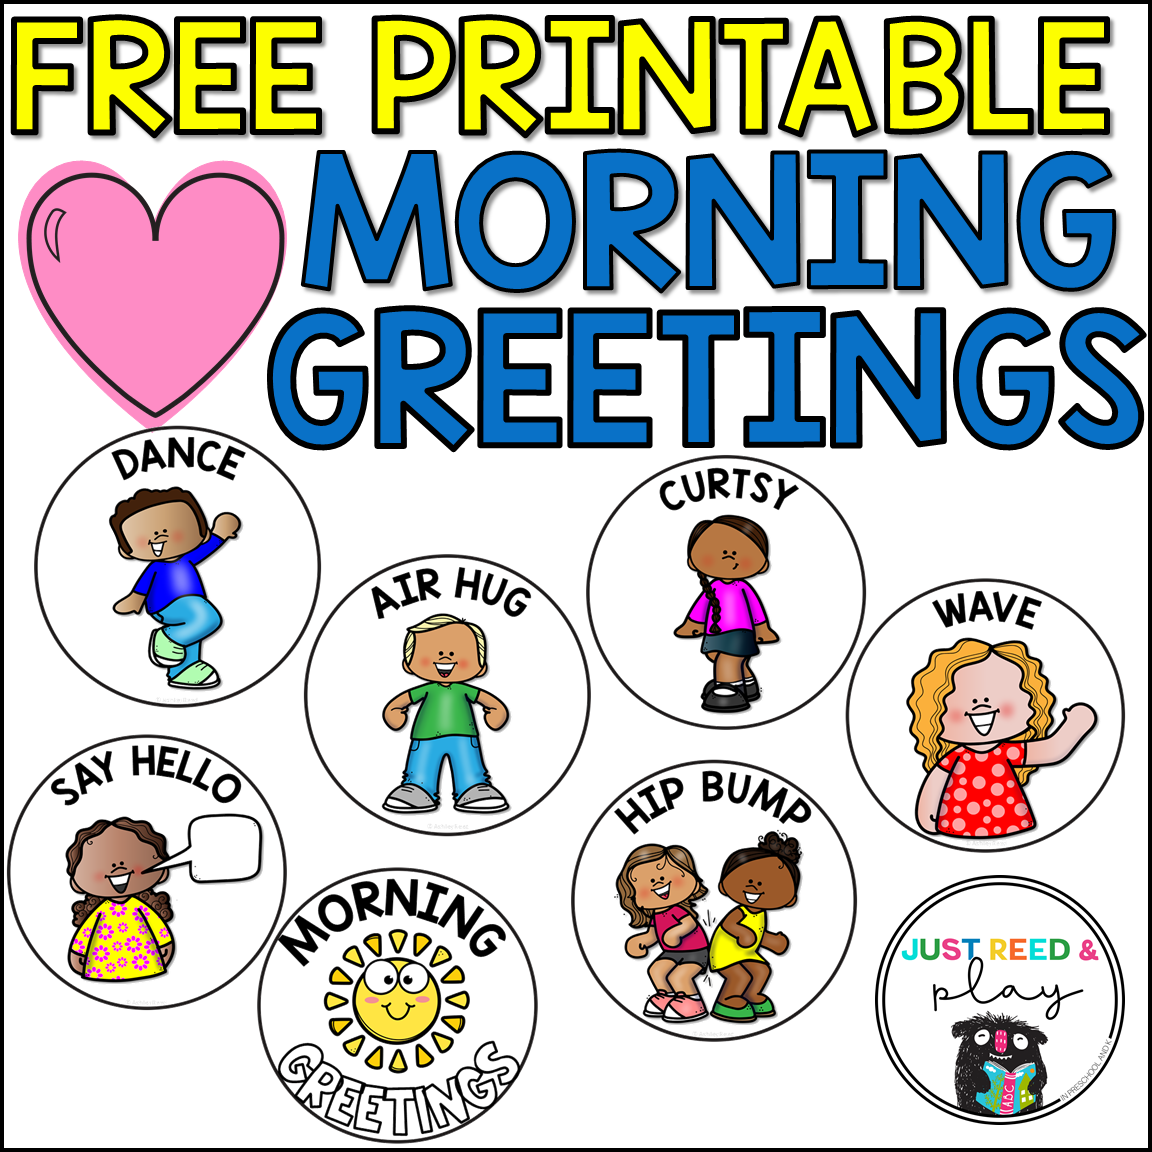 Fun Morning Greeting Ideas for the Classroom | Morning